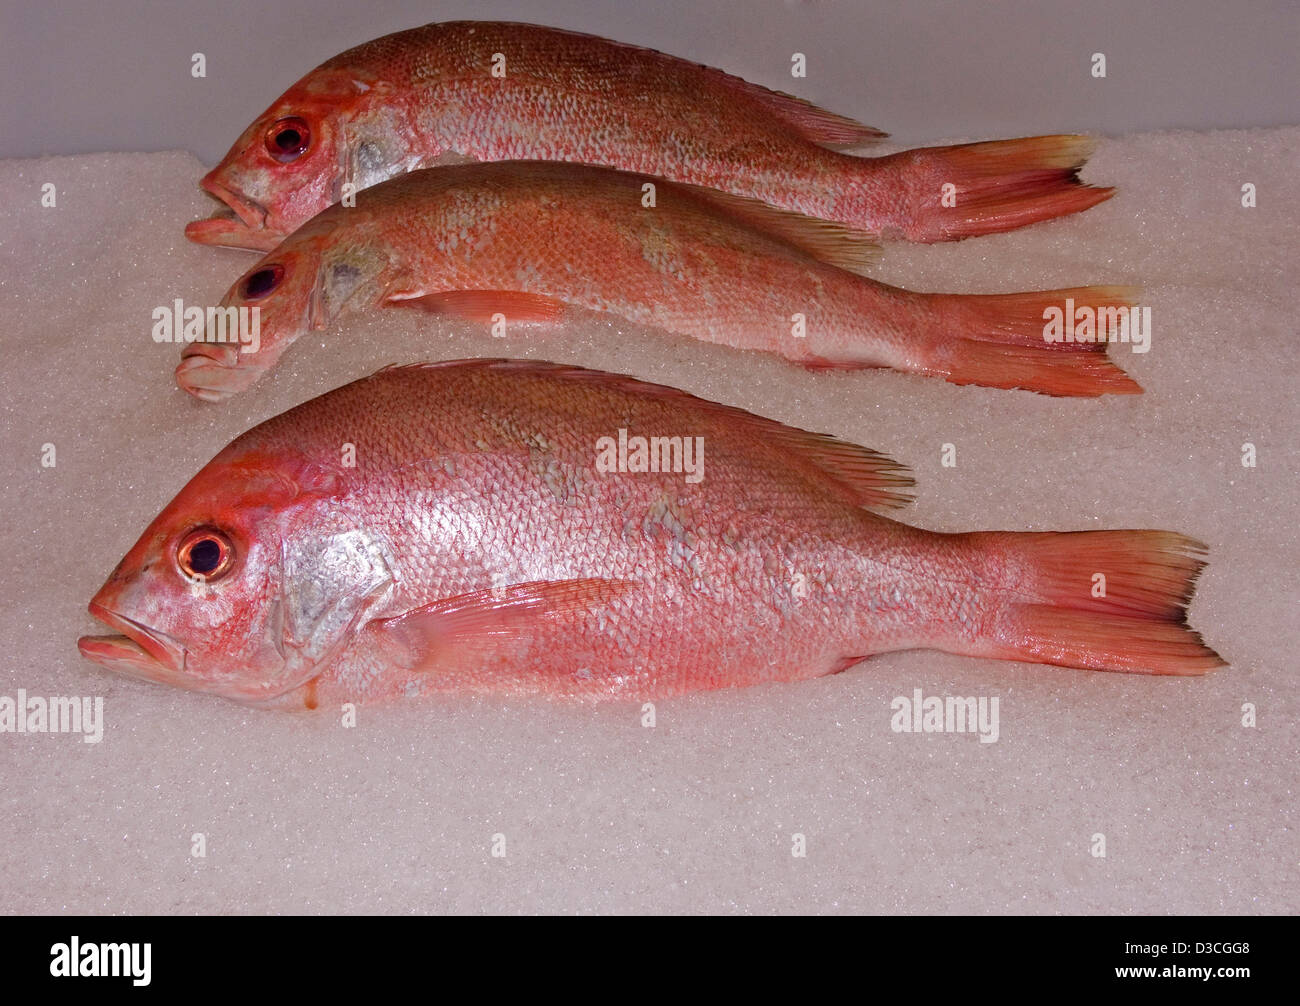 Three bright red fish - Australian snapper - on ice in a supermarket ...